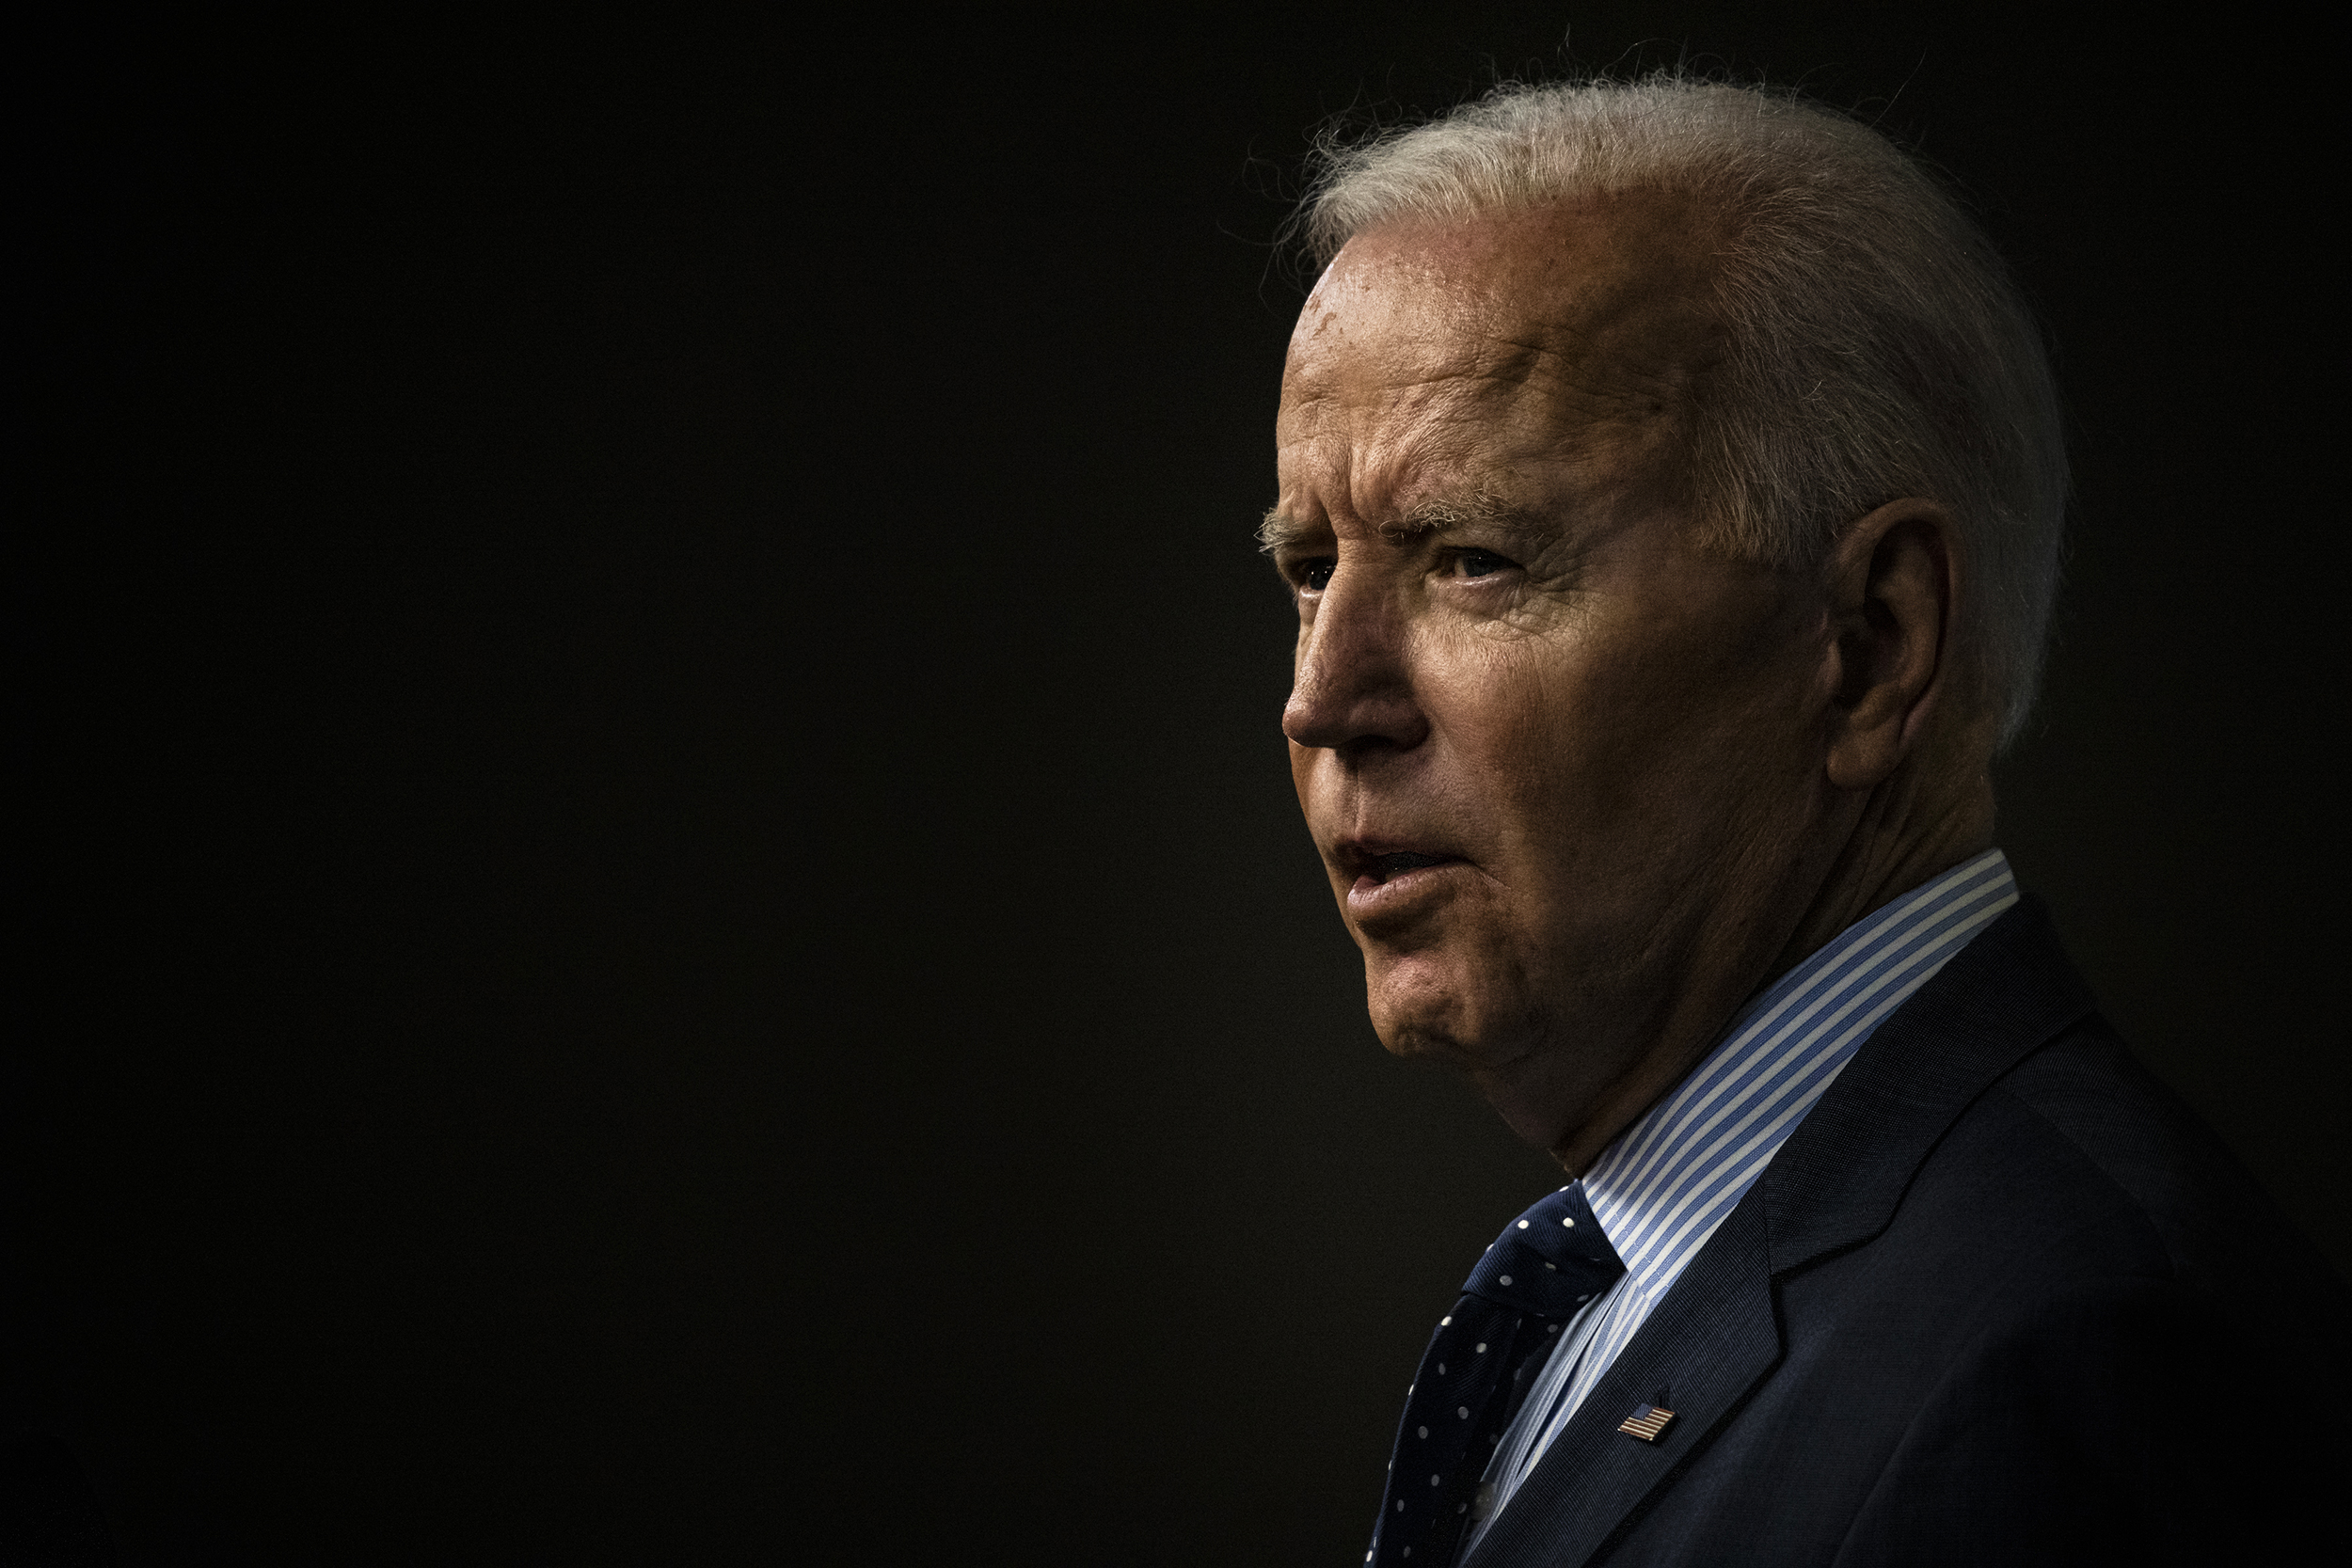 Biden to deliver address after U.S. military members killed in Afghanistan